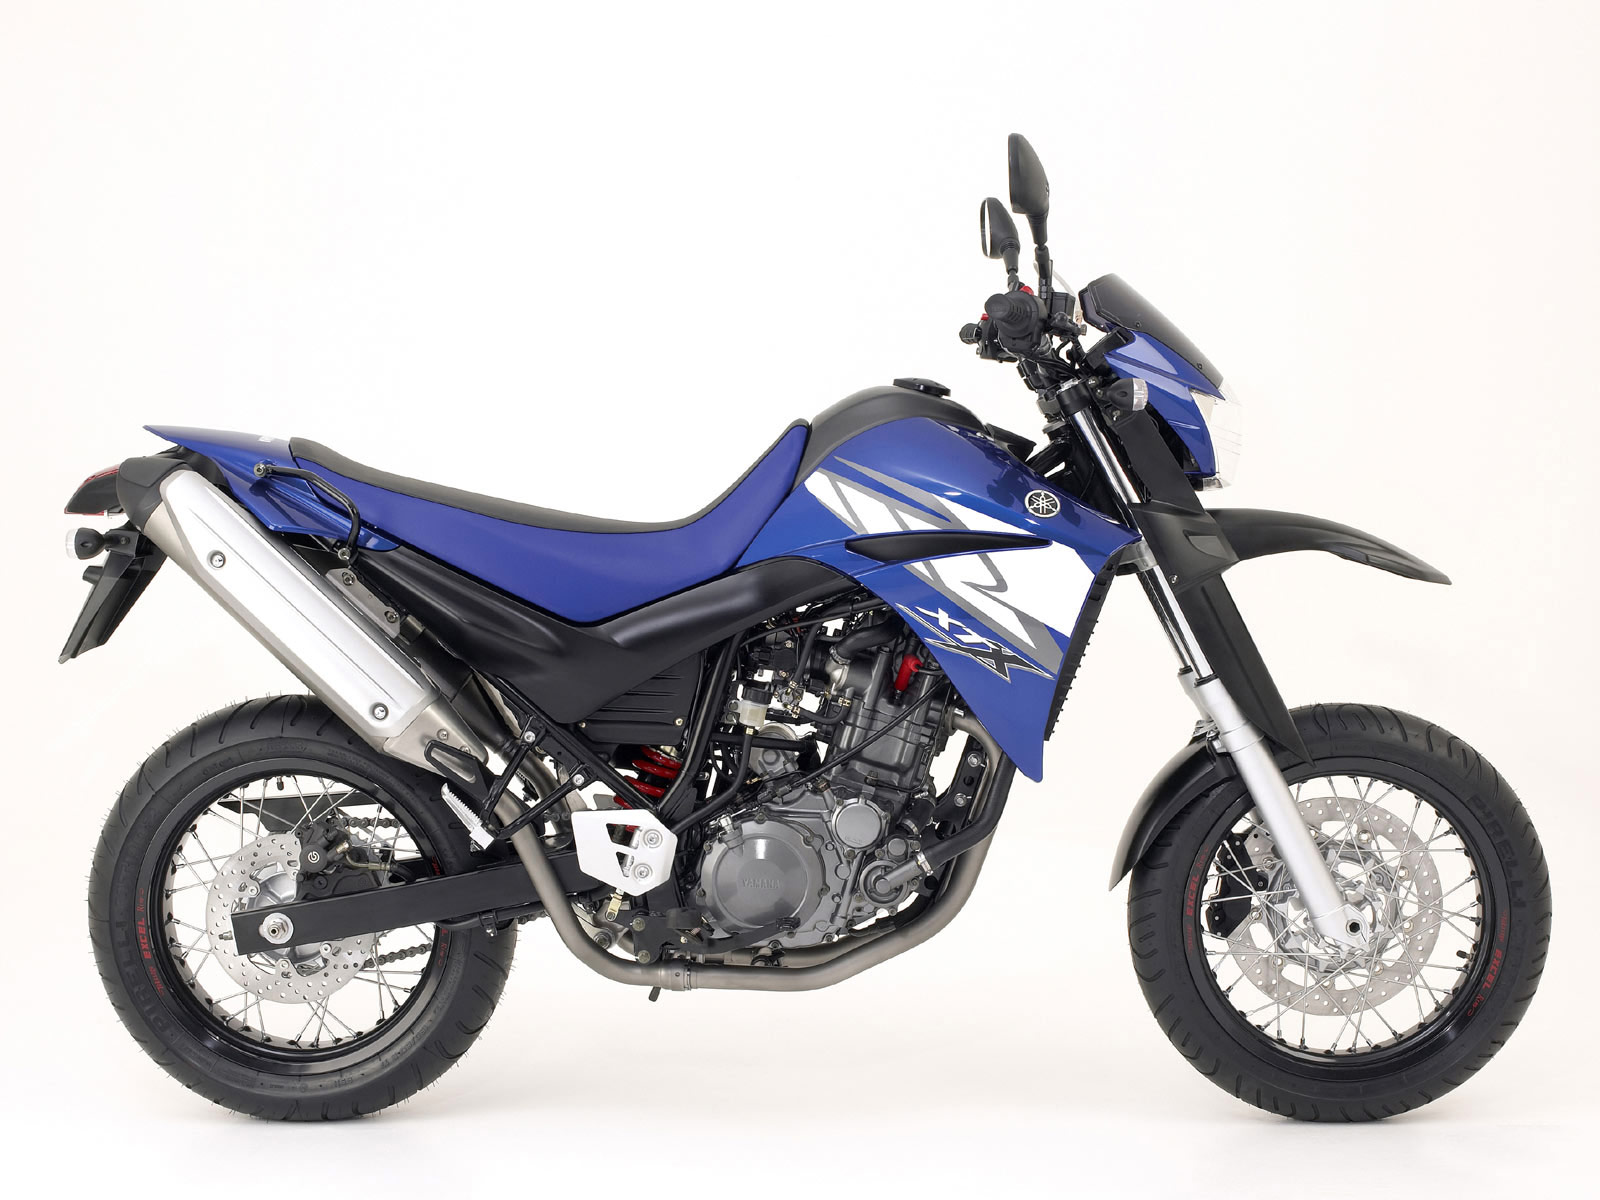 2004 YAMAHA XT660X Supermotard pictures, specifications